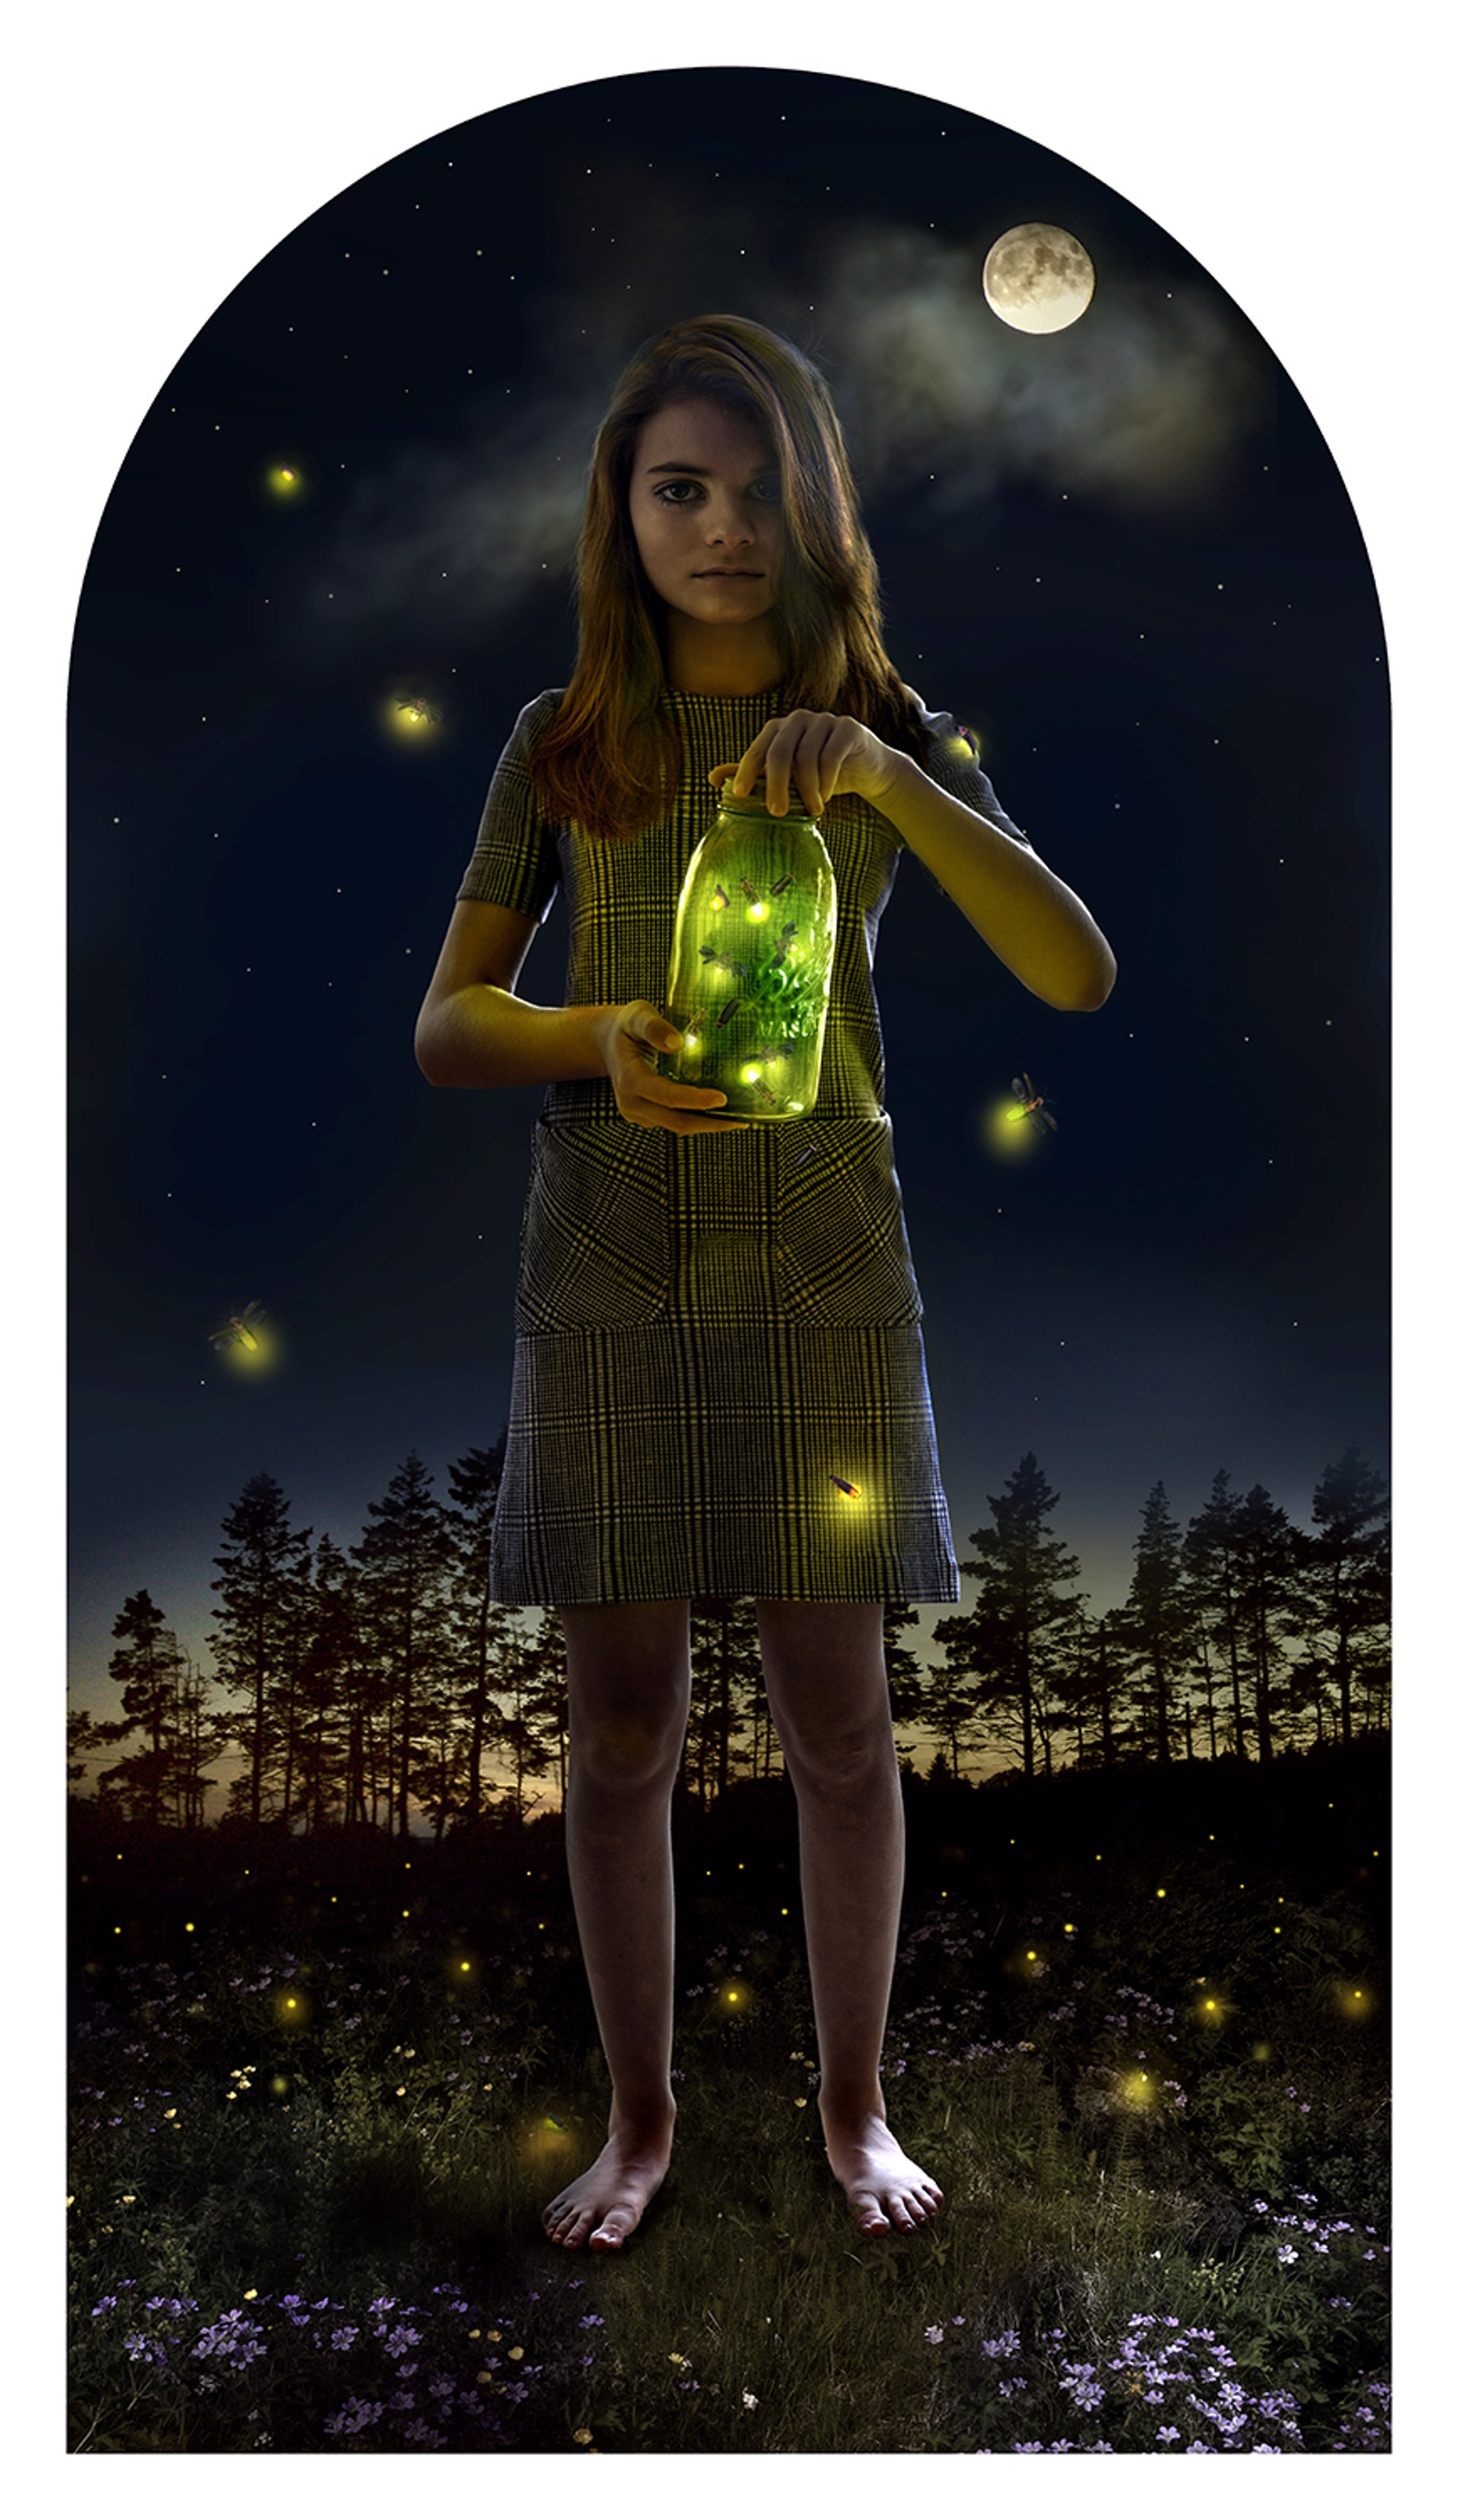 Lightning in a Jar by Tom Chambers